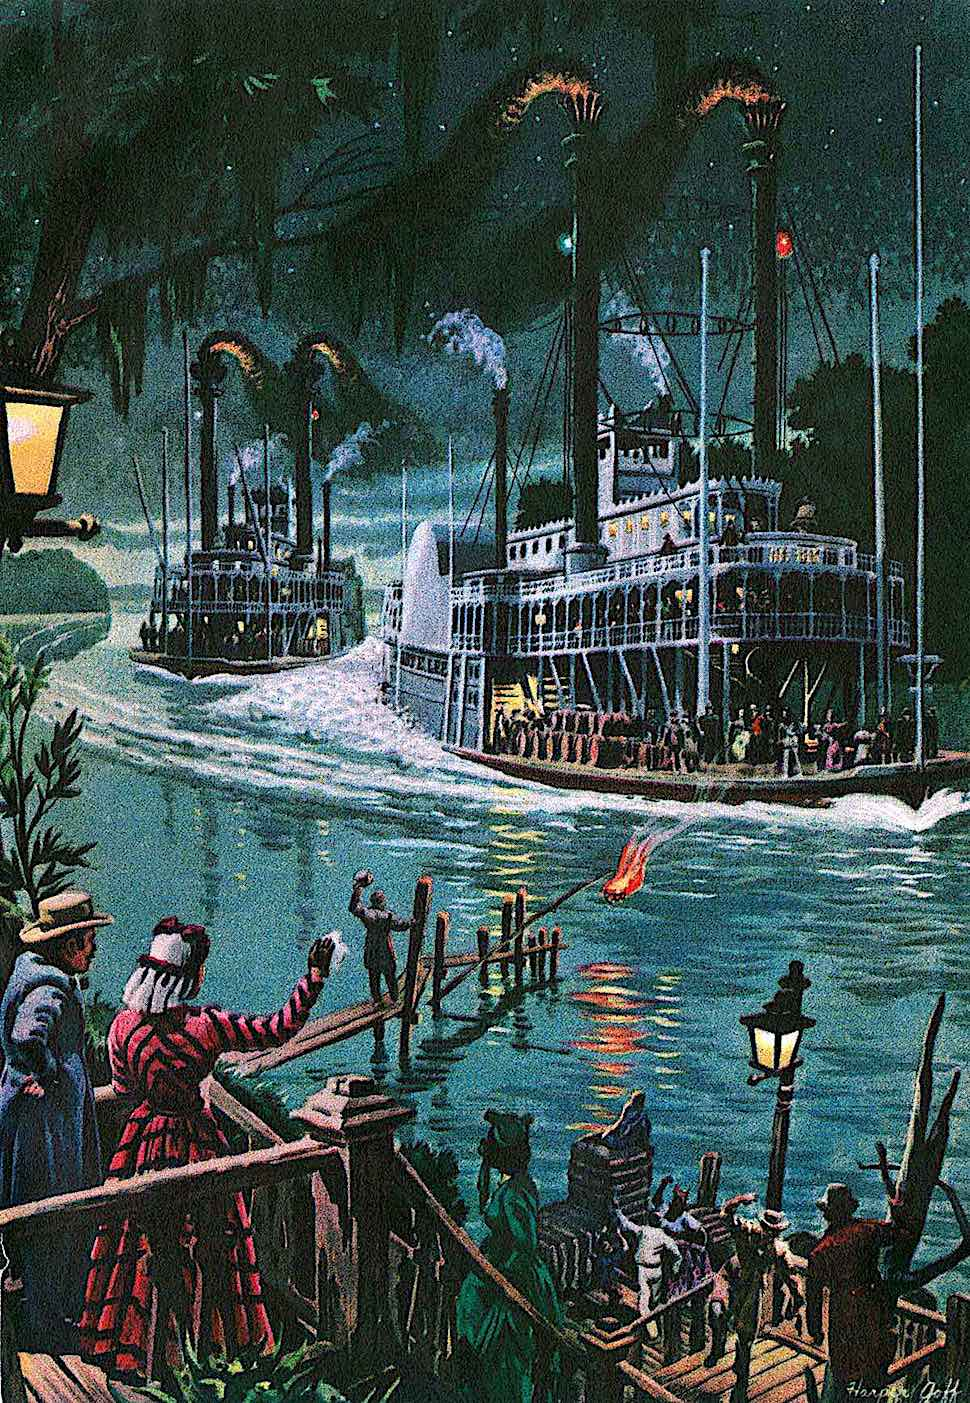 a Harper Goff illustration of a riverboat race at night